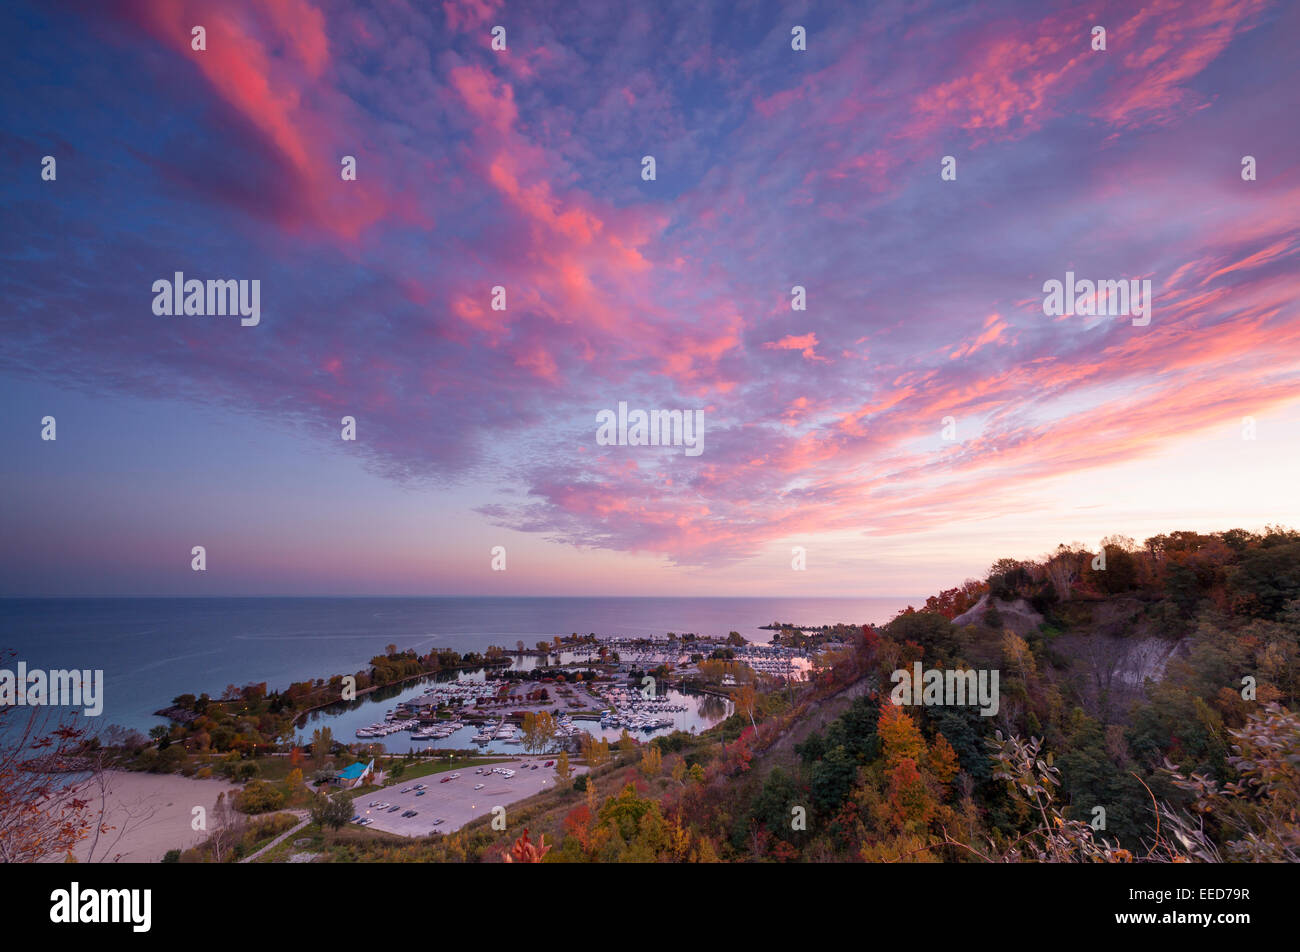 A view of the arina at Bluffer's Park, taken from atop the bluffs in Scarborough, Ontario, Canada. - Stock Image